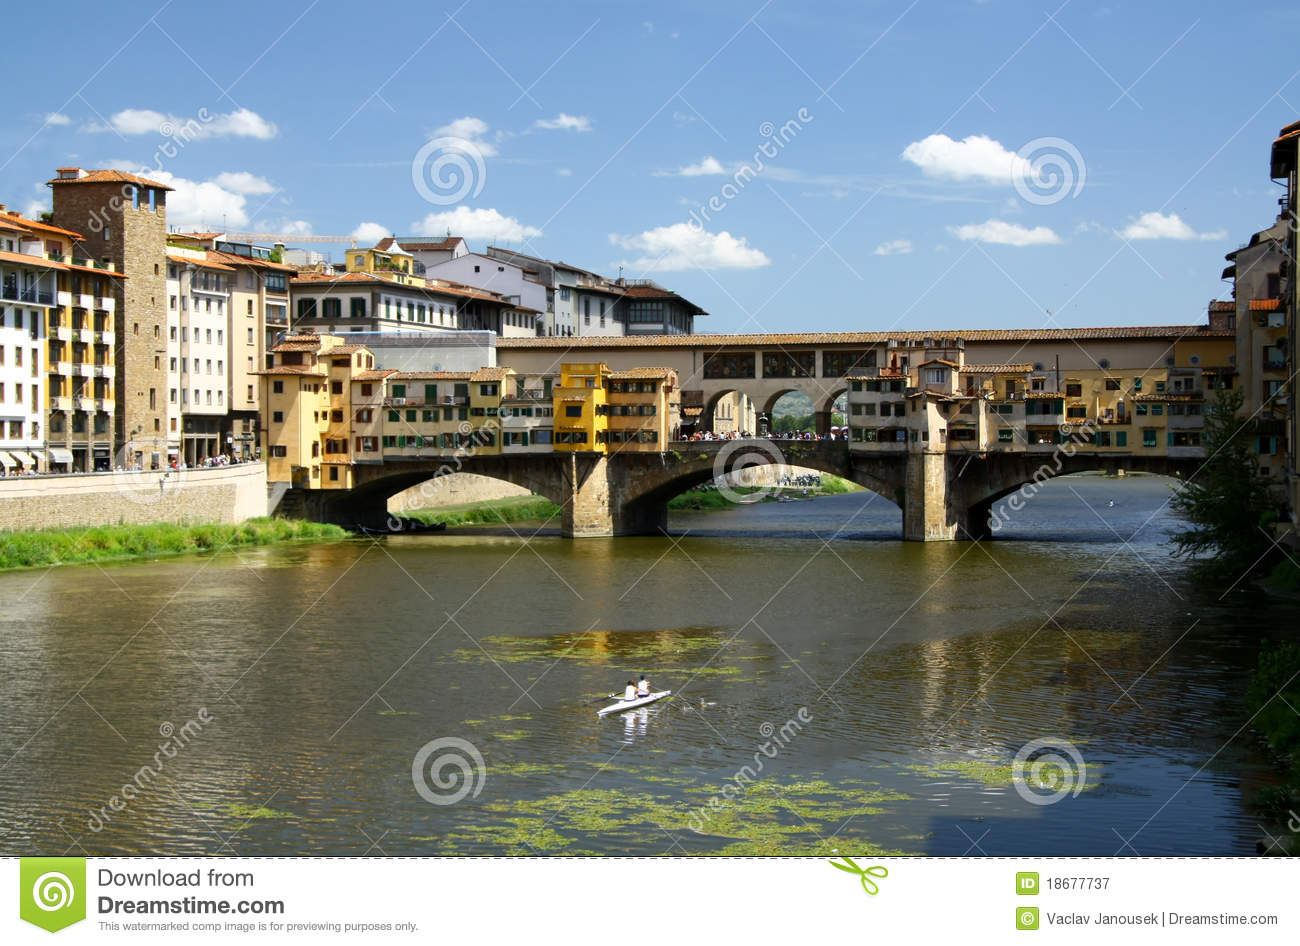 Goldbrücke in Firenze